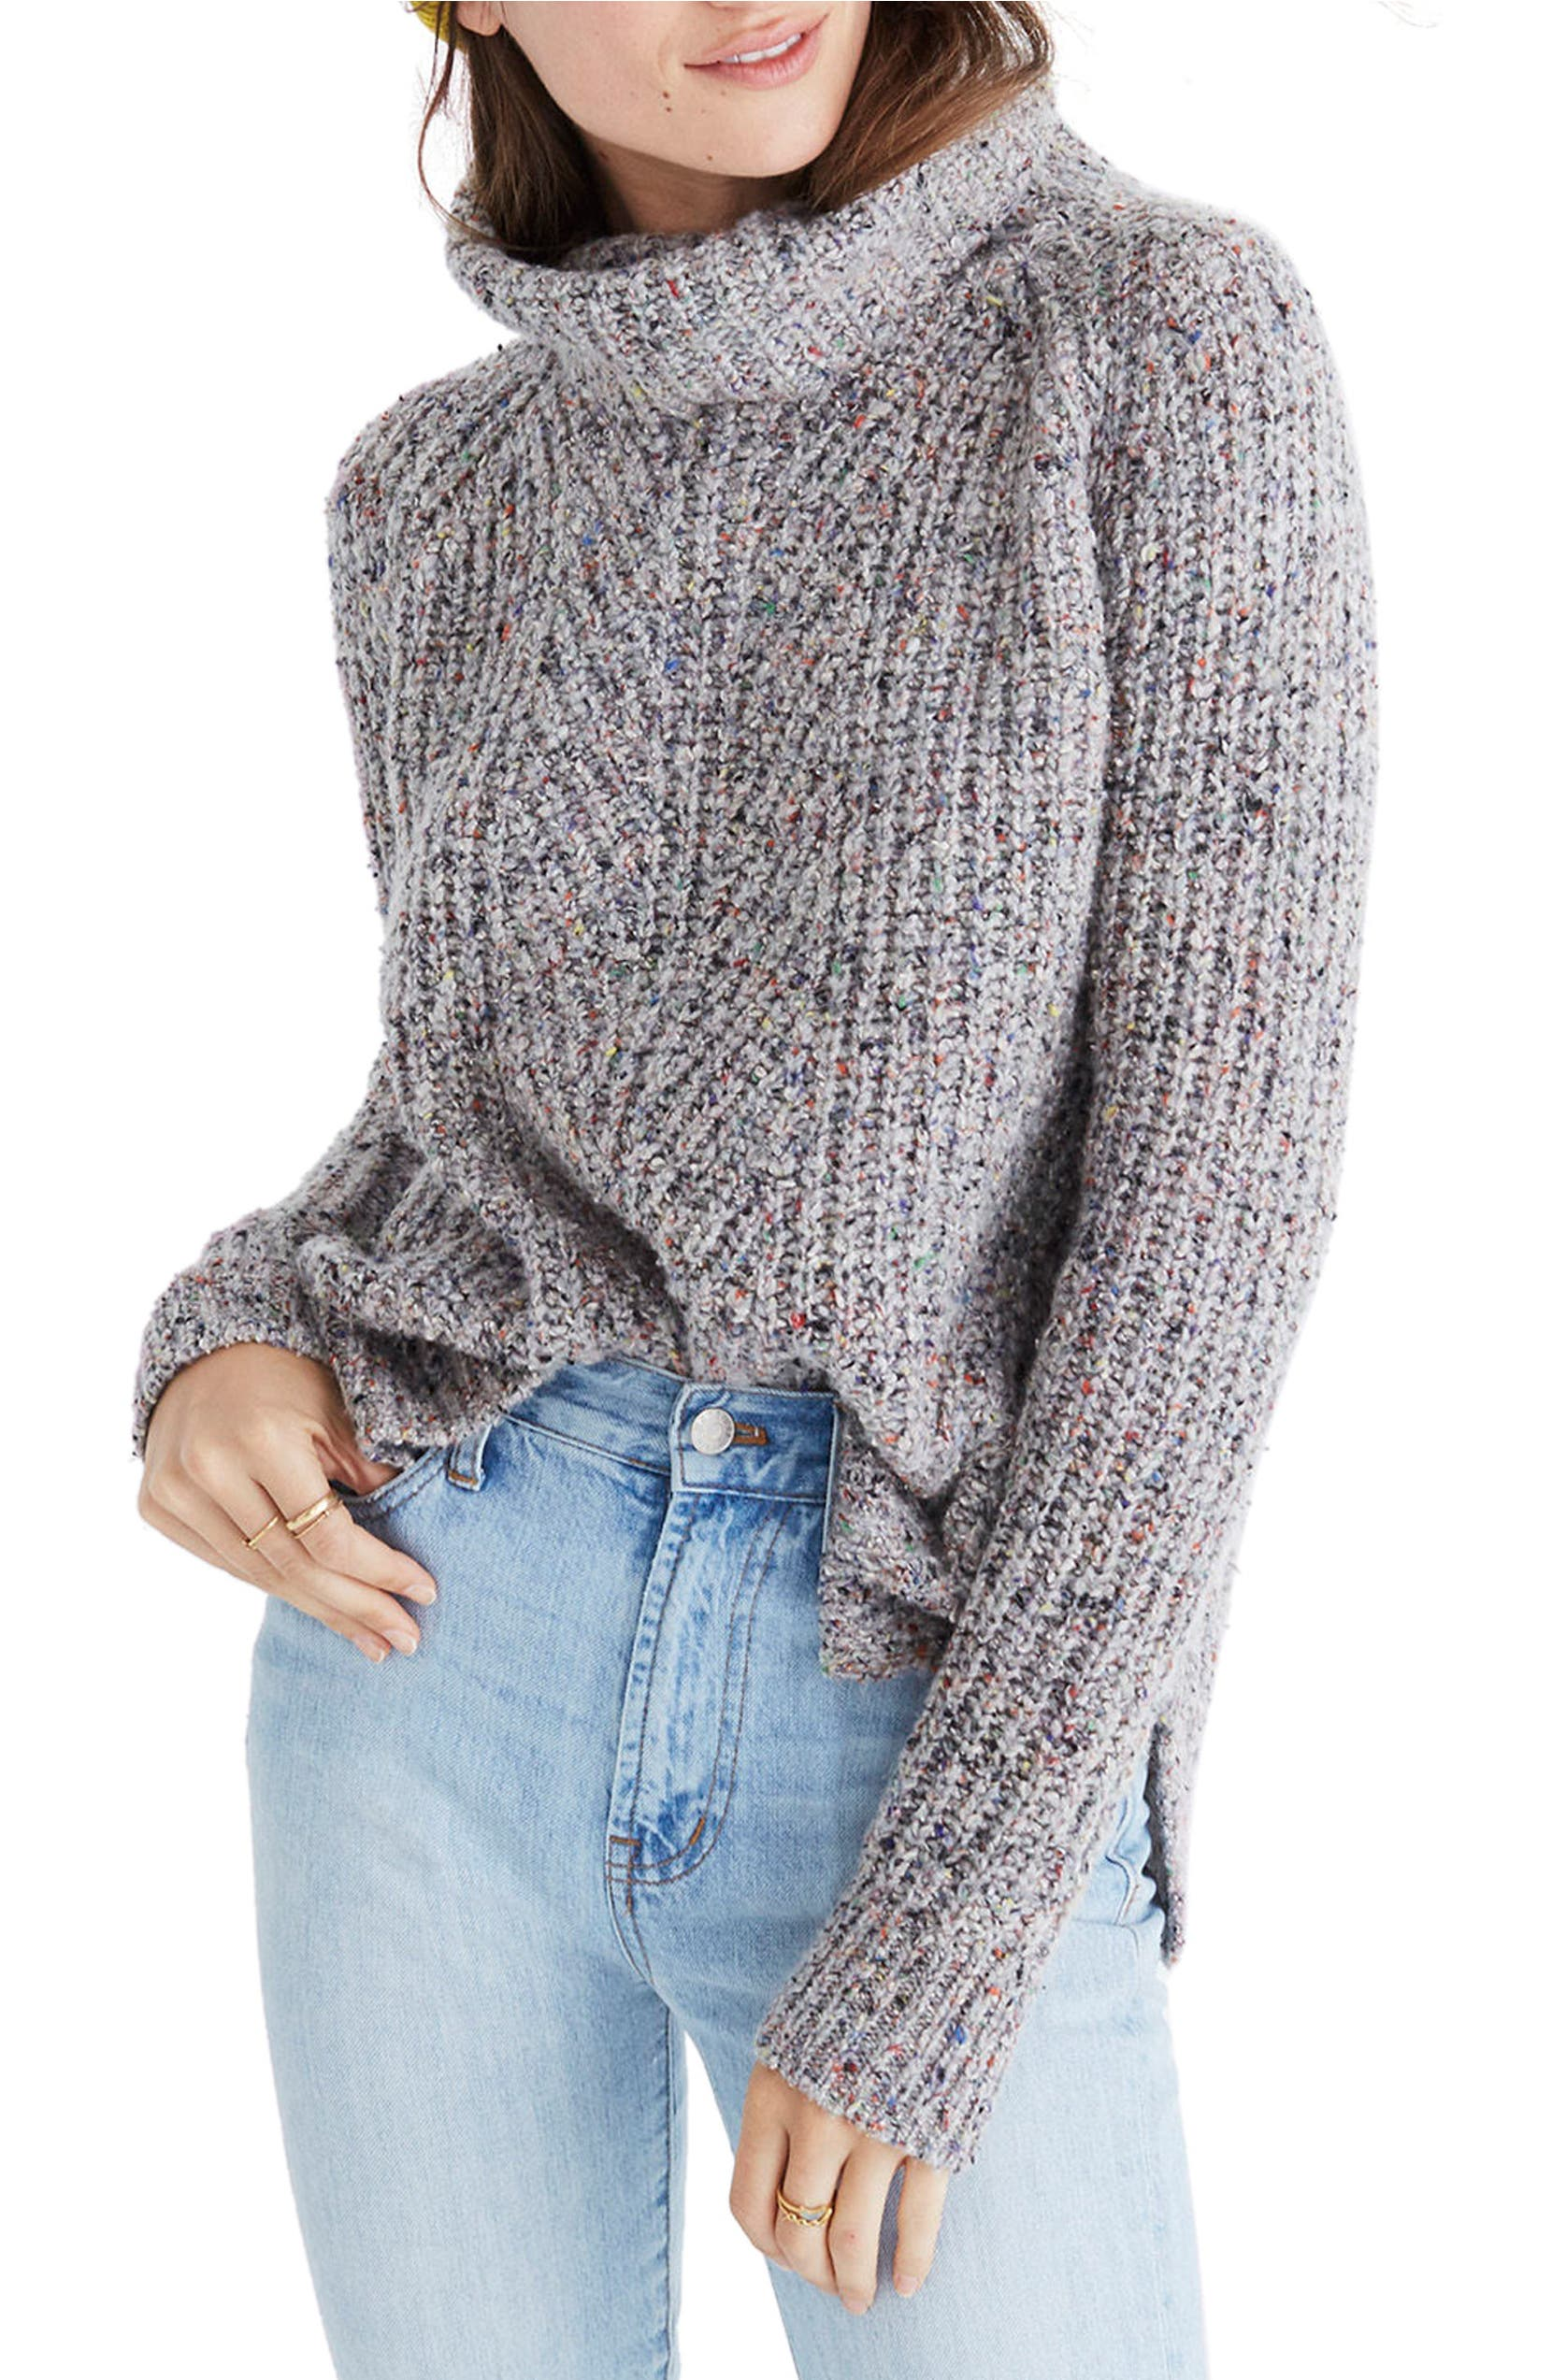 Colorfleck Ribbed Turtleneck Sweater